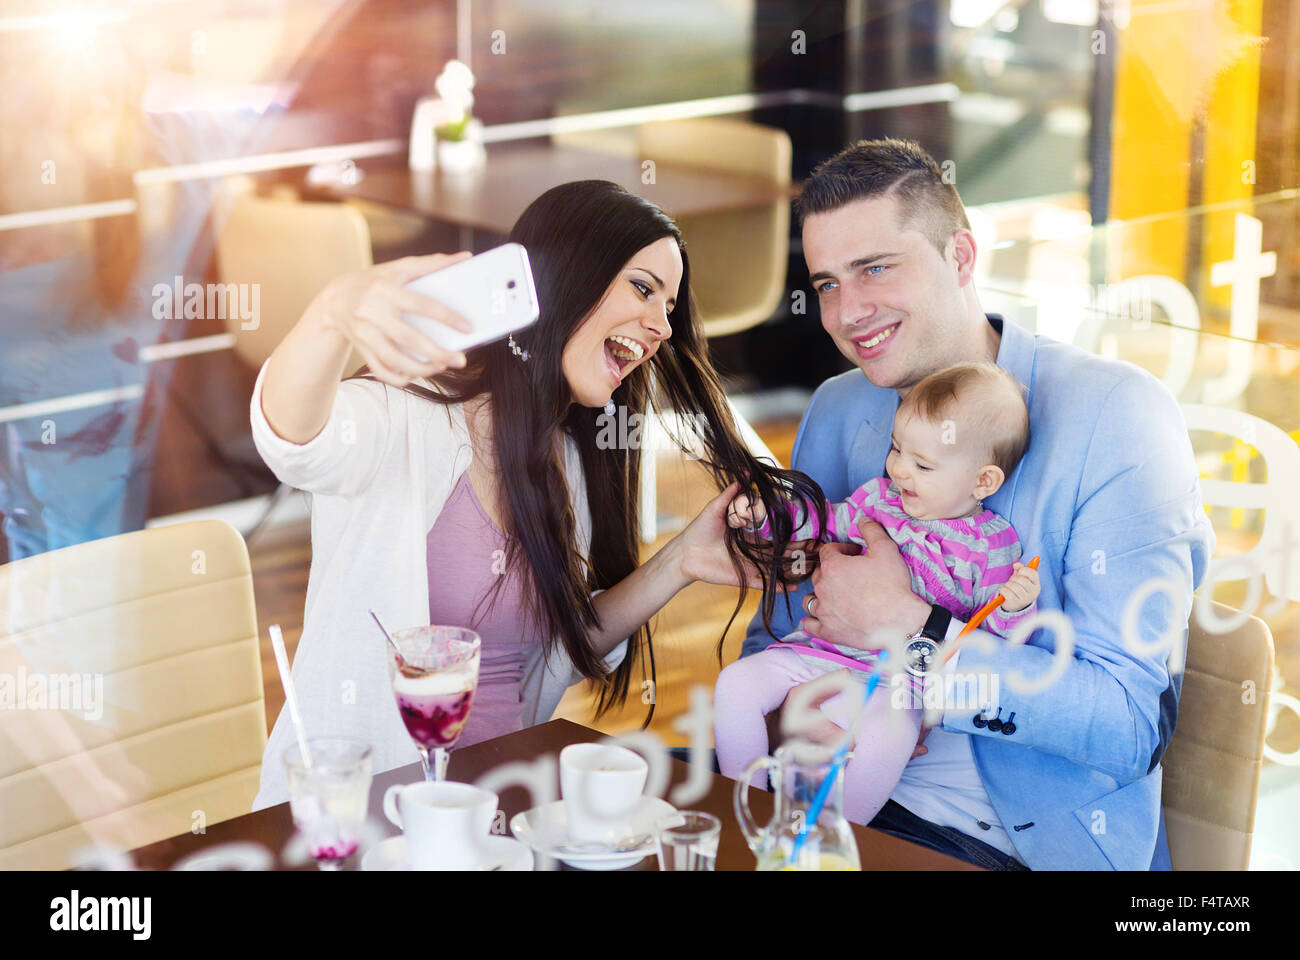 Young family in cafe - Stock Image